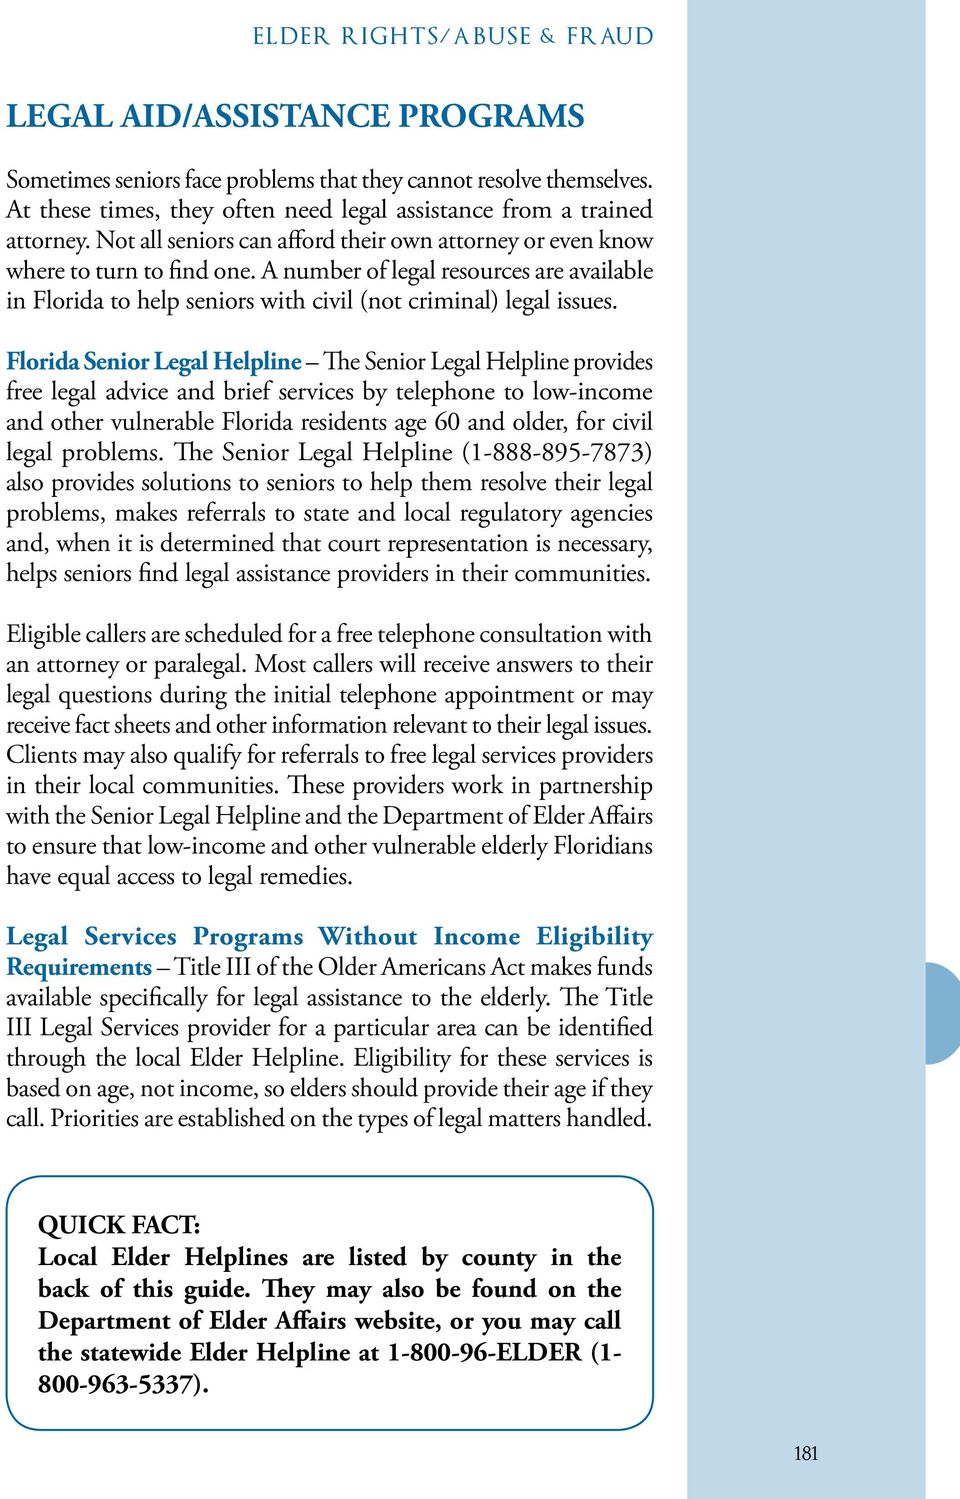 Florida Senior Legal Helpline The Senior Legal Helpline provides free legal advice and brief services by telephone to low-income and other vulnerable Florida residents age 60 and older, for civil